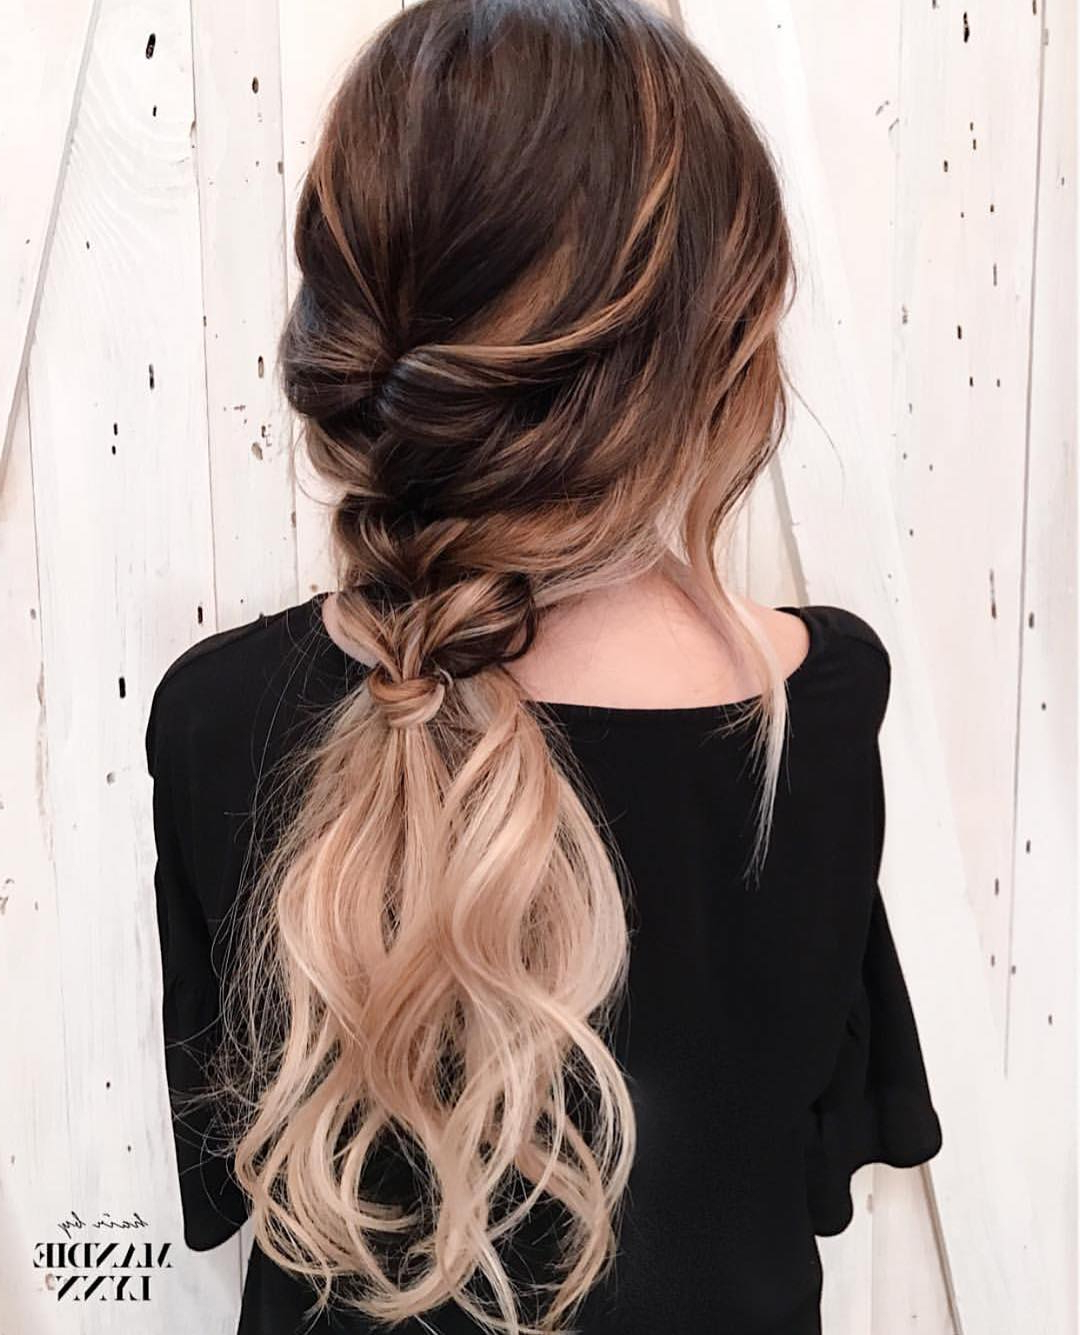 10 Trendiest Ponytail Hairstyles For Long Hair 2019 – Easy Inside Most Popular Ponytail Layered Long Hairstyles (Gallery 10 of 20)